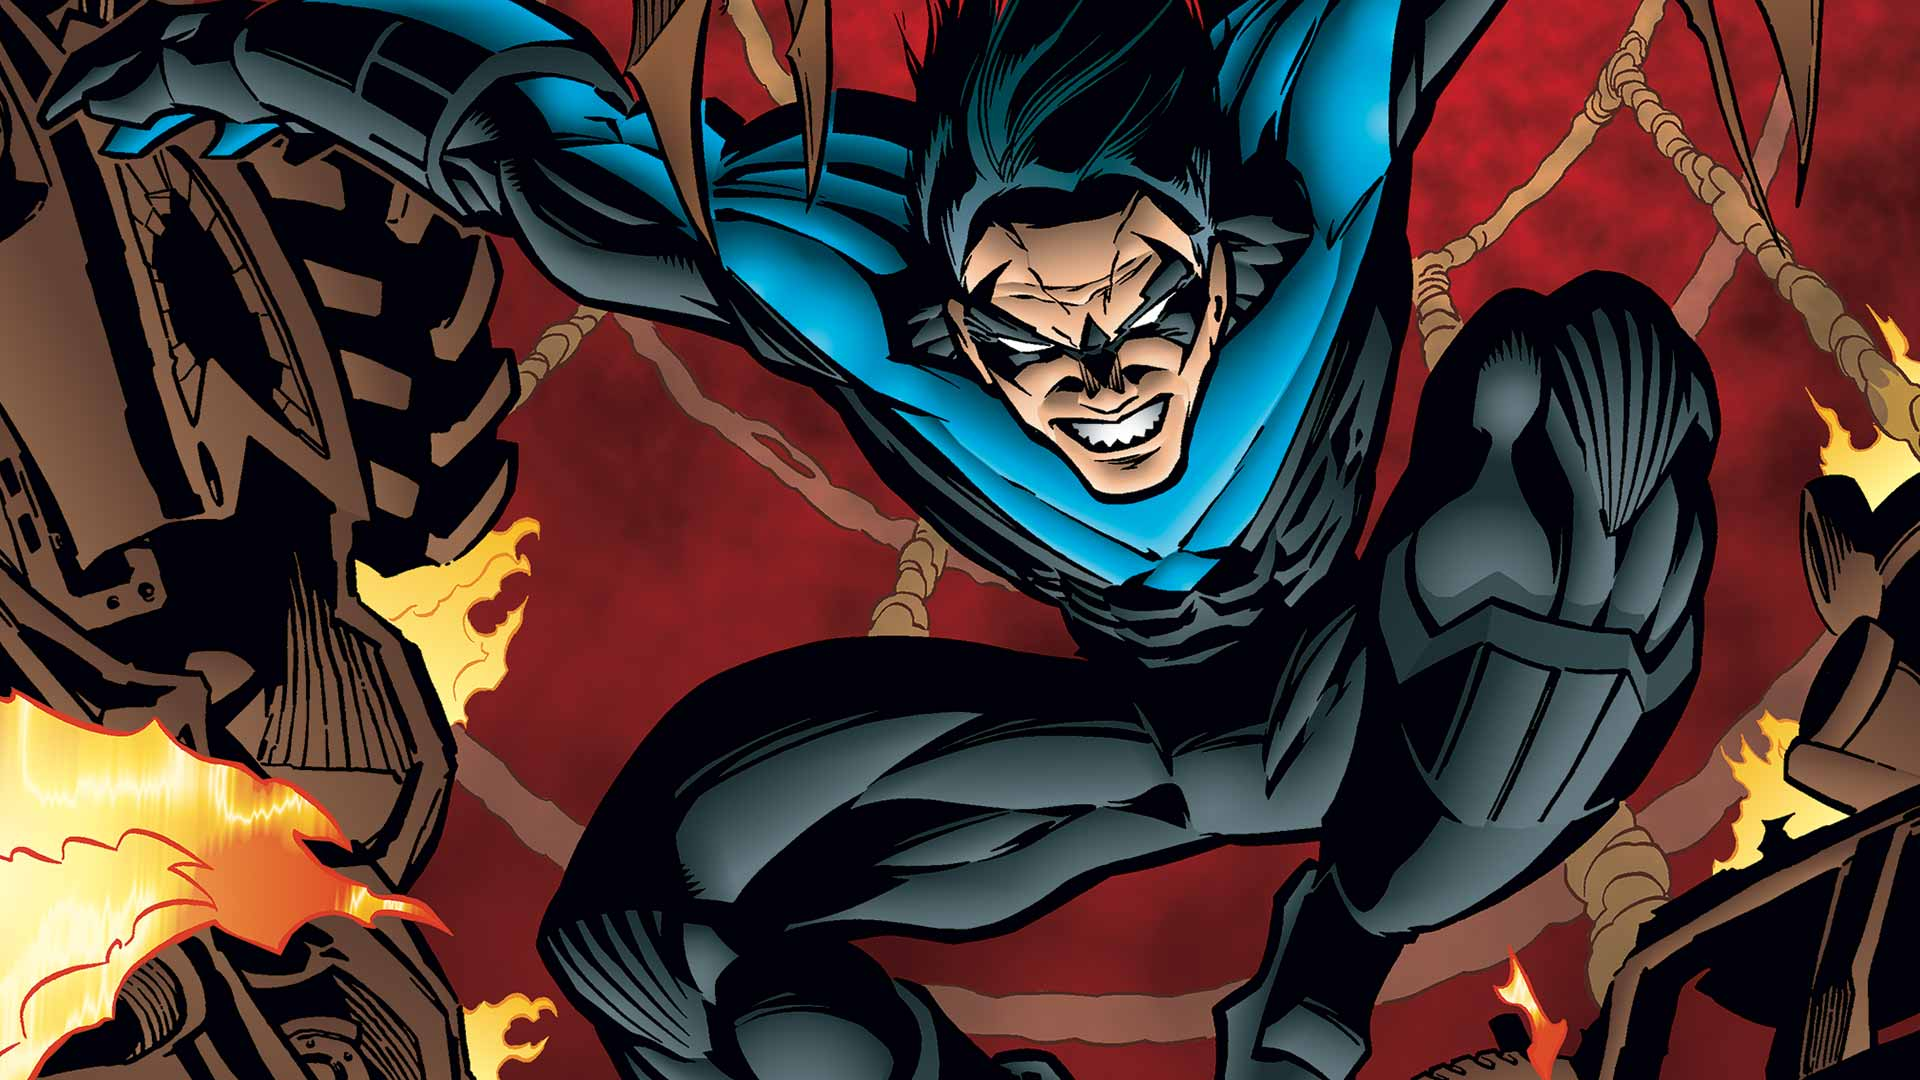 gallerycomics_1920x1080_20150610_nightwing-v2-rough-justice_55709178370c14_39308075.jpg